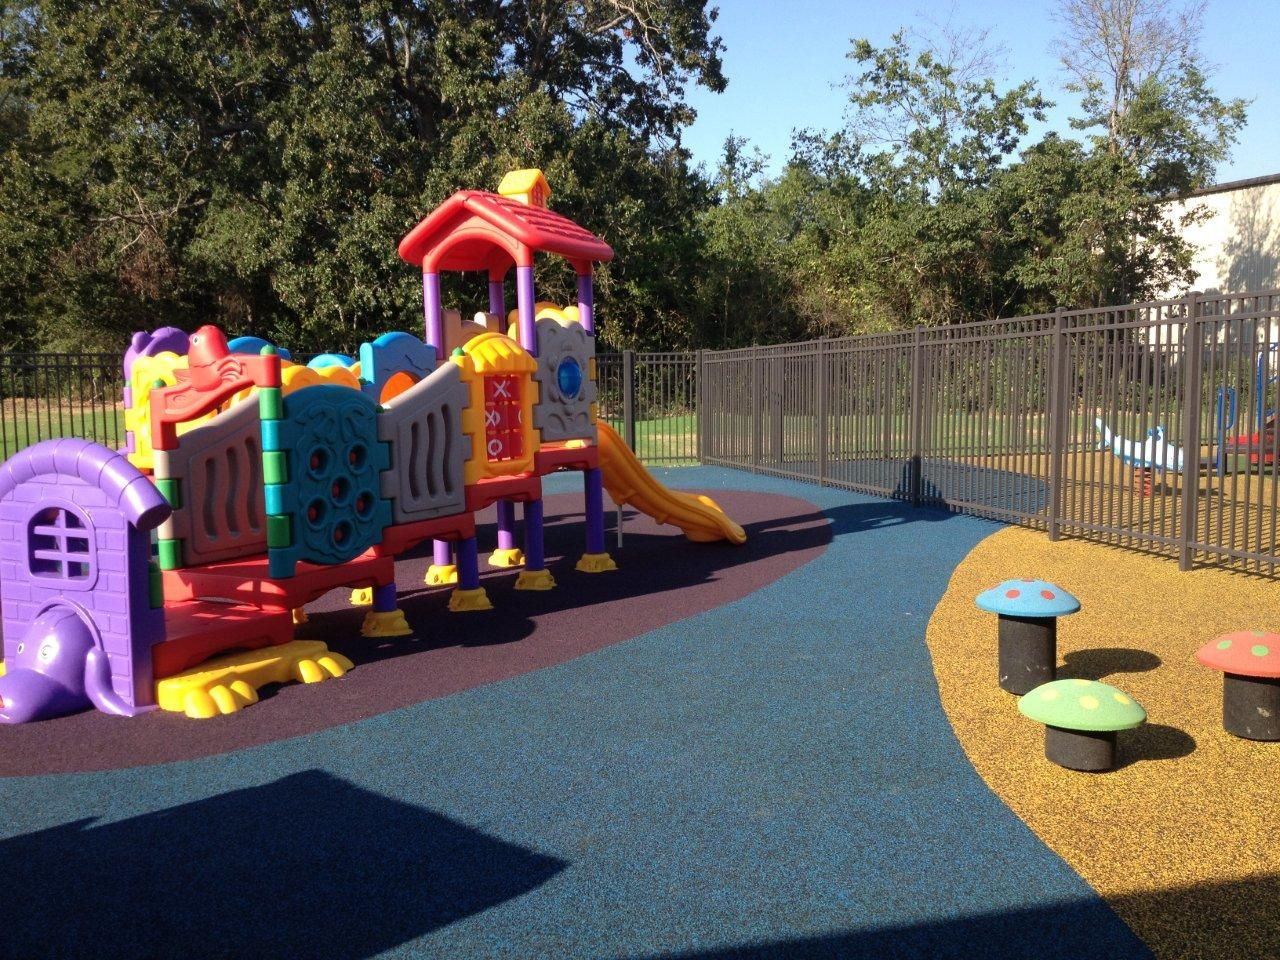 Inexpensive Outdoor Play Area Equipment For Daycare And Preschool